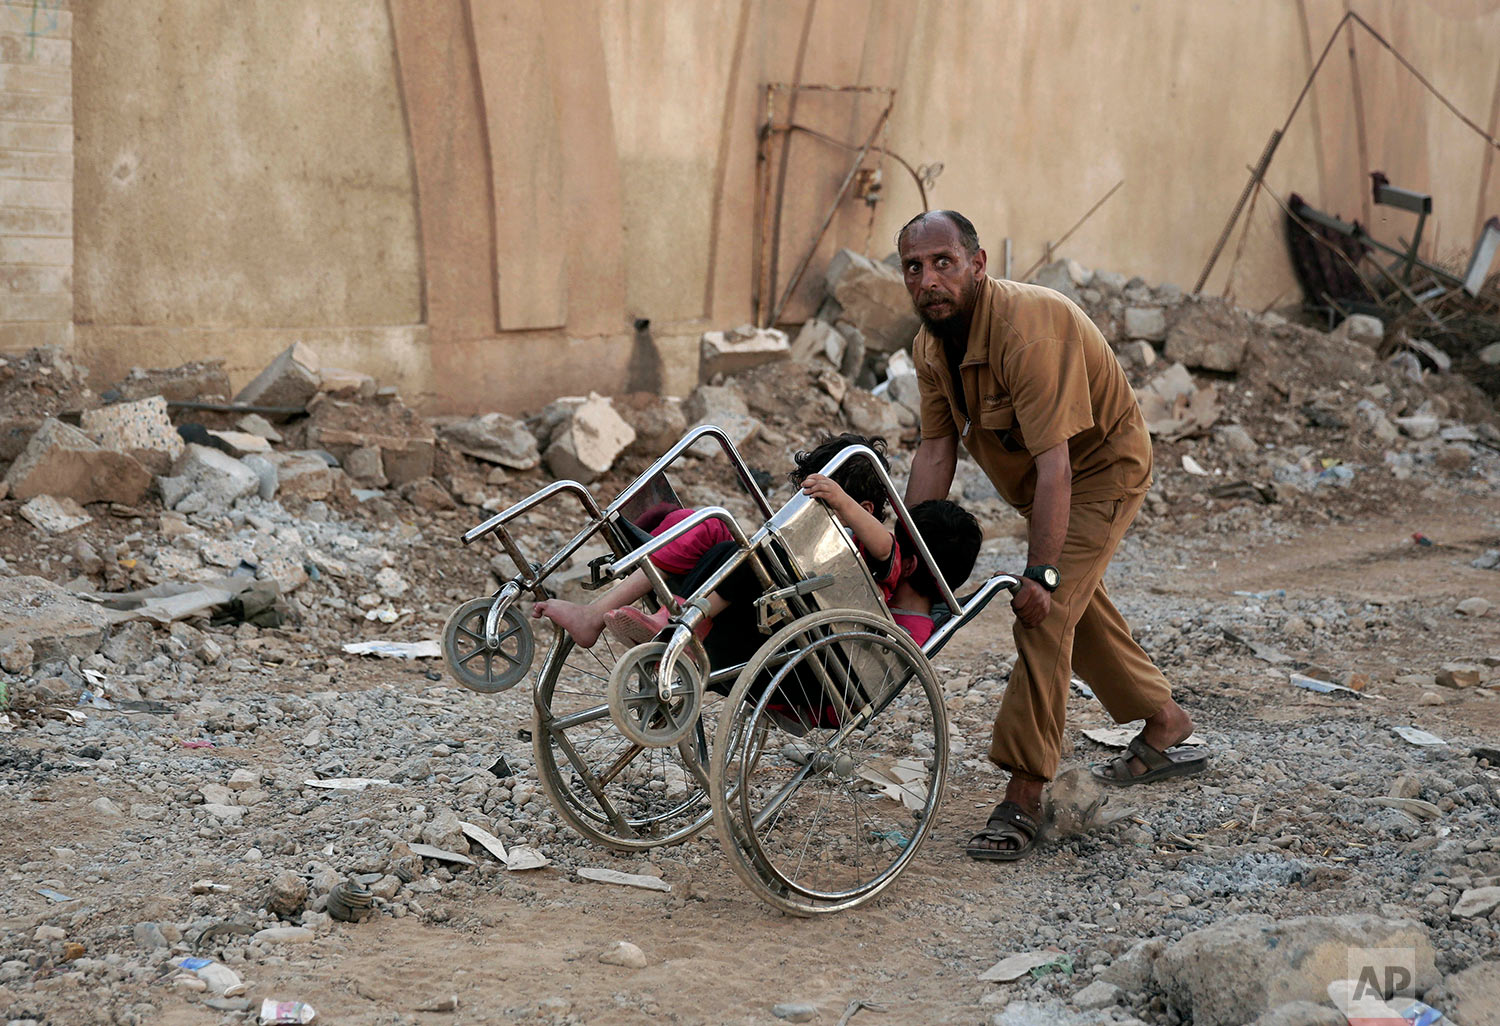 A man pushes two children in a wheelchair as they flee heavy fighting between Islamic State militants and Iraqi special forces in Mosul, Iraq, Wednesday, May 10, 2017. (AP Photo/Maya Alleruzzo)